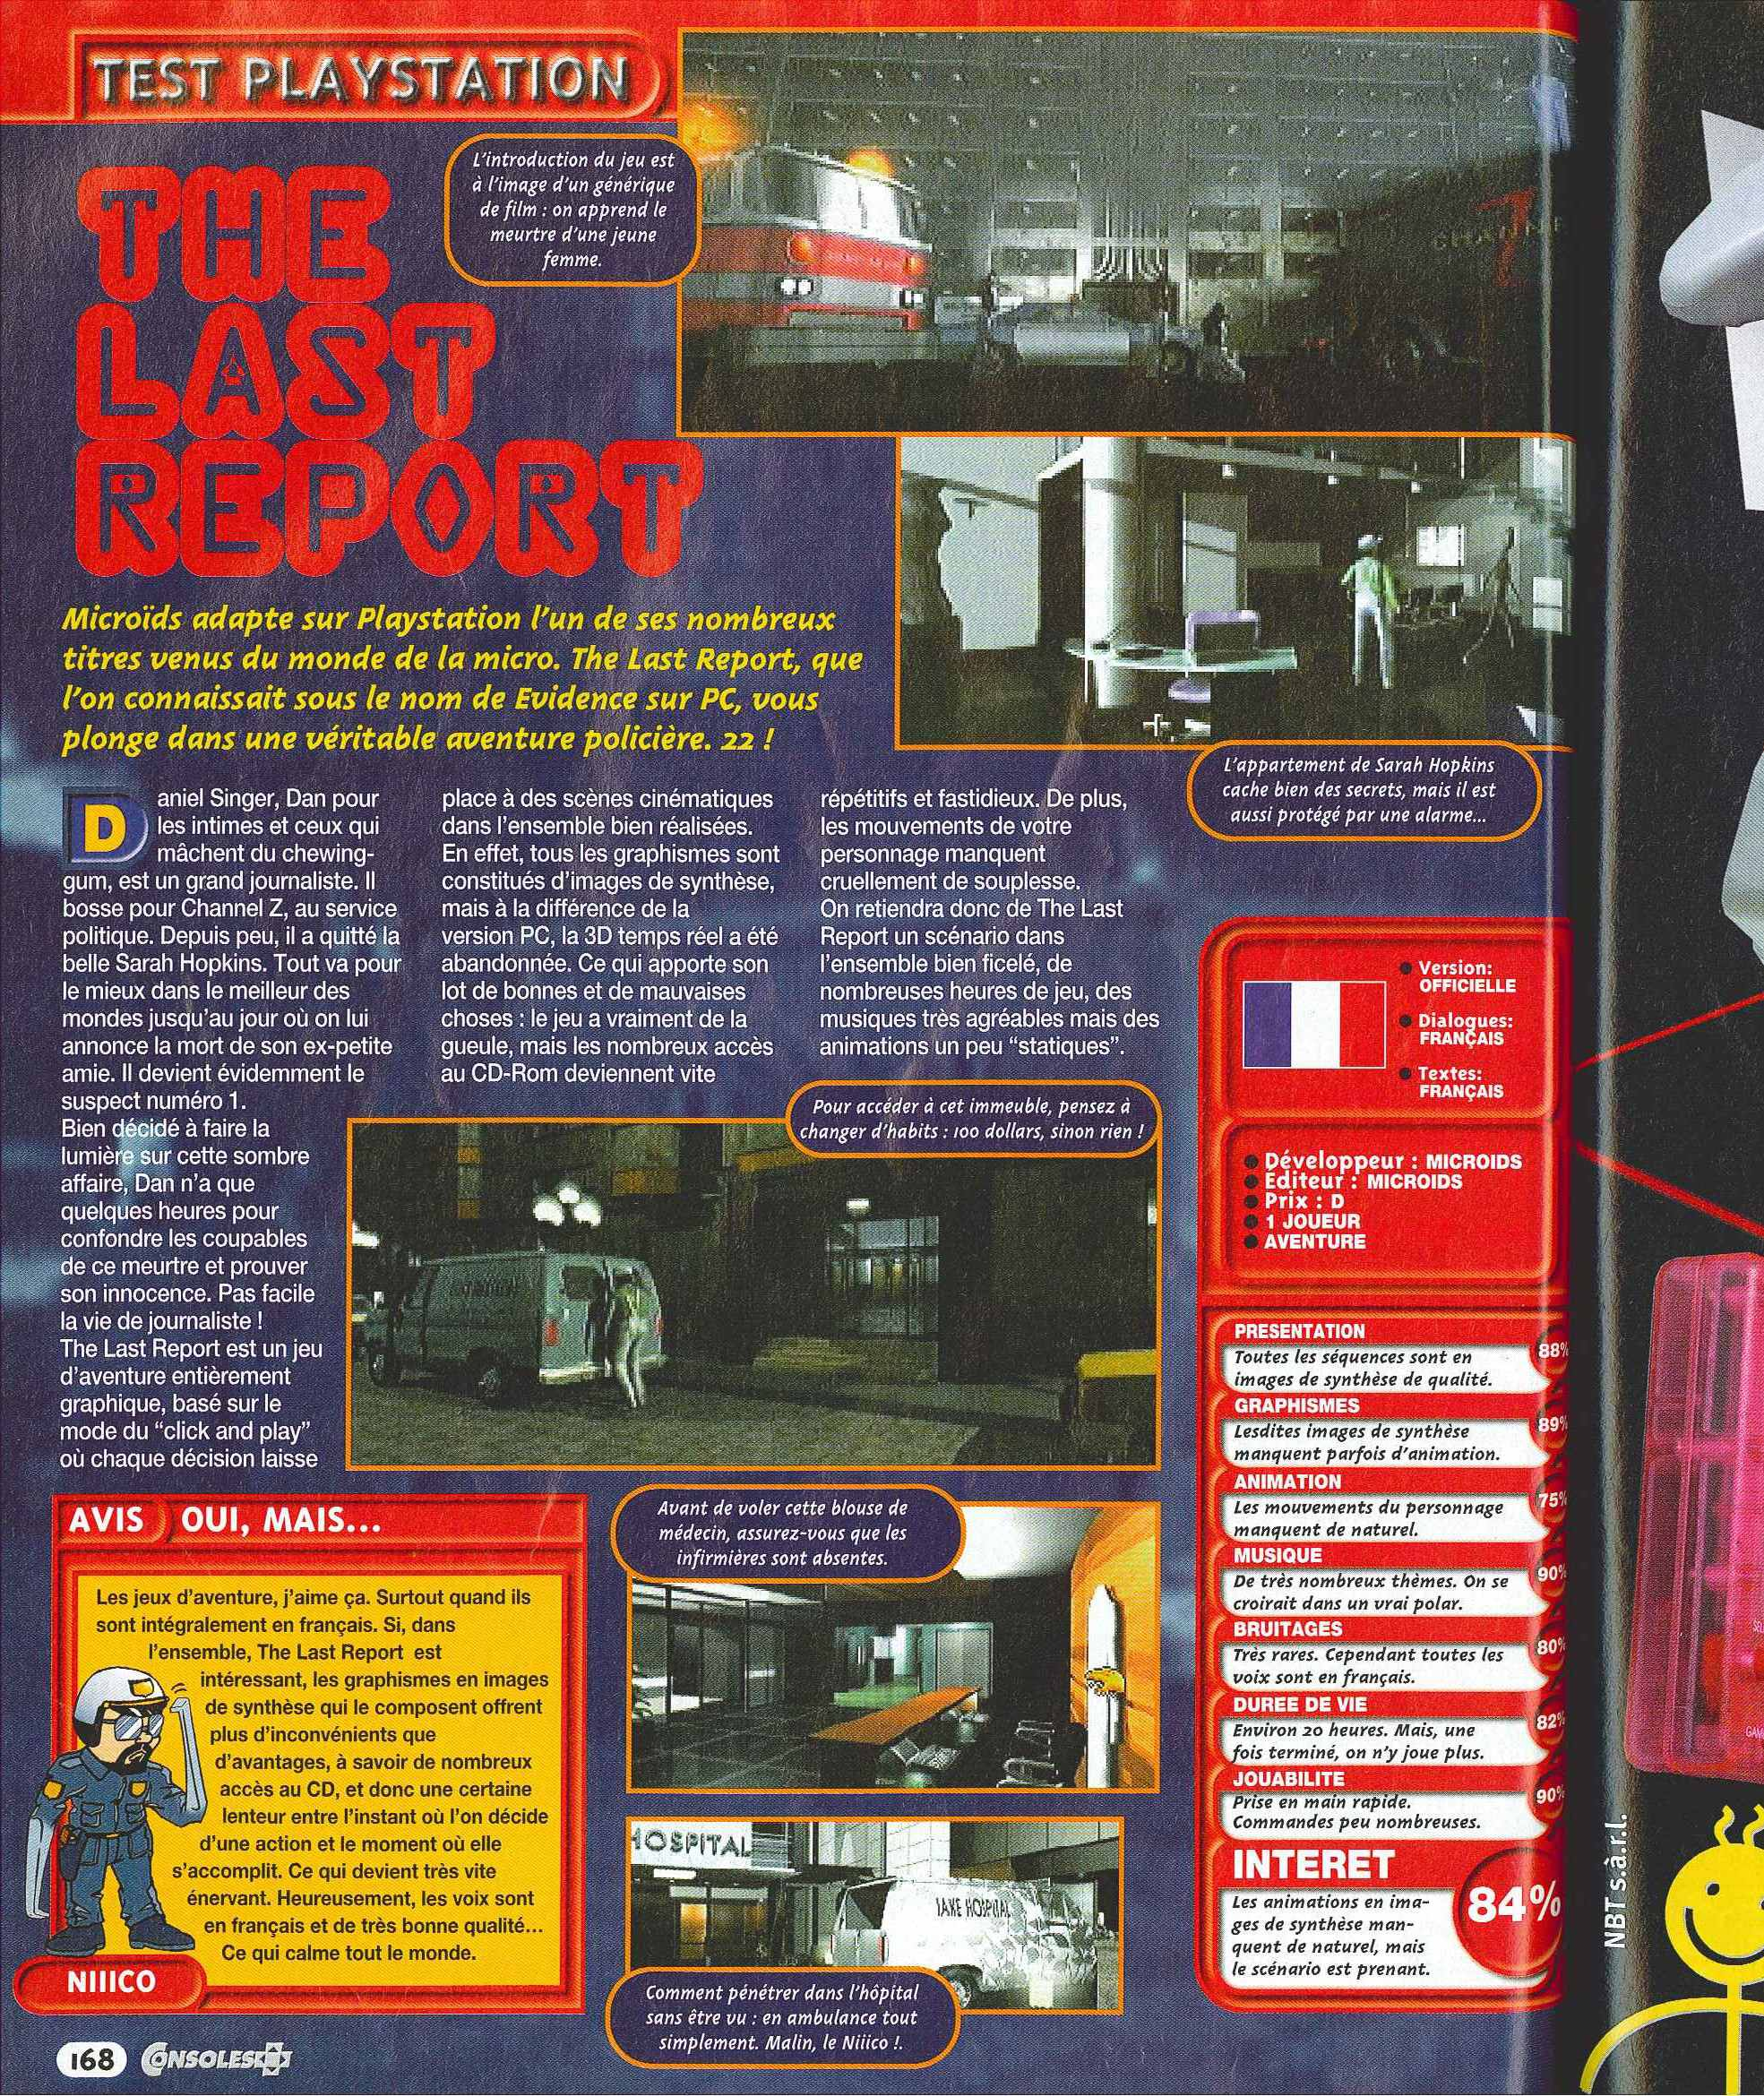 Beton De Synthese Avis evidence: the last report for playstation (1997) mobyrank